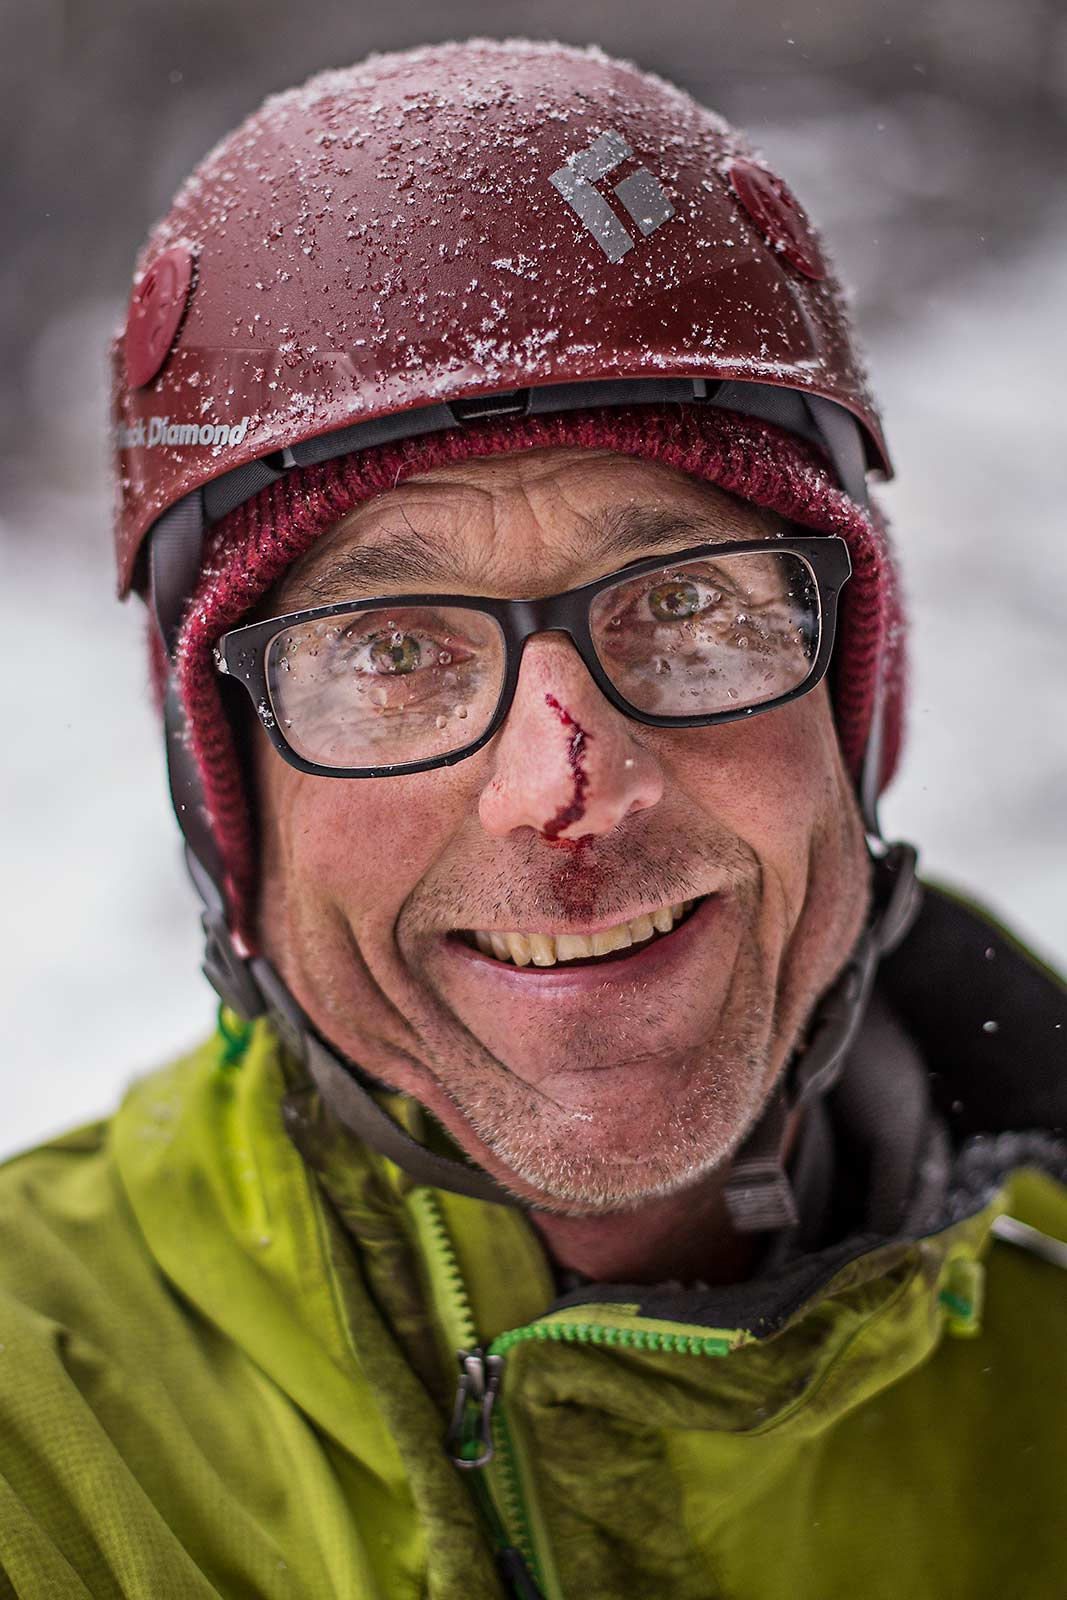 A closeup portrait of an ice climber coated with fresh snow and with a bloddy nose in New York